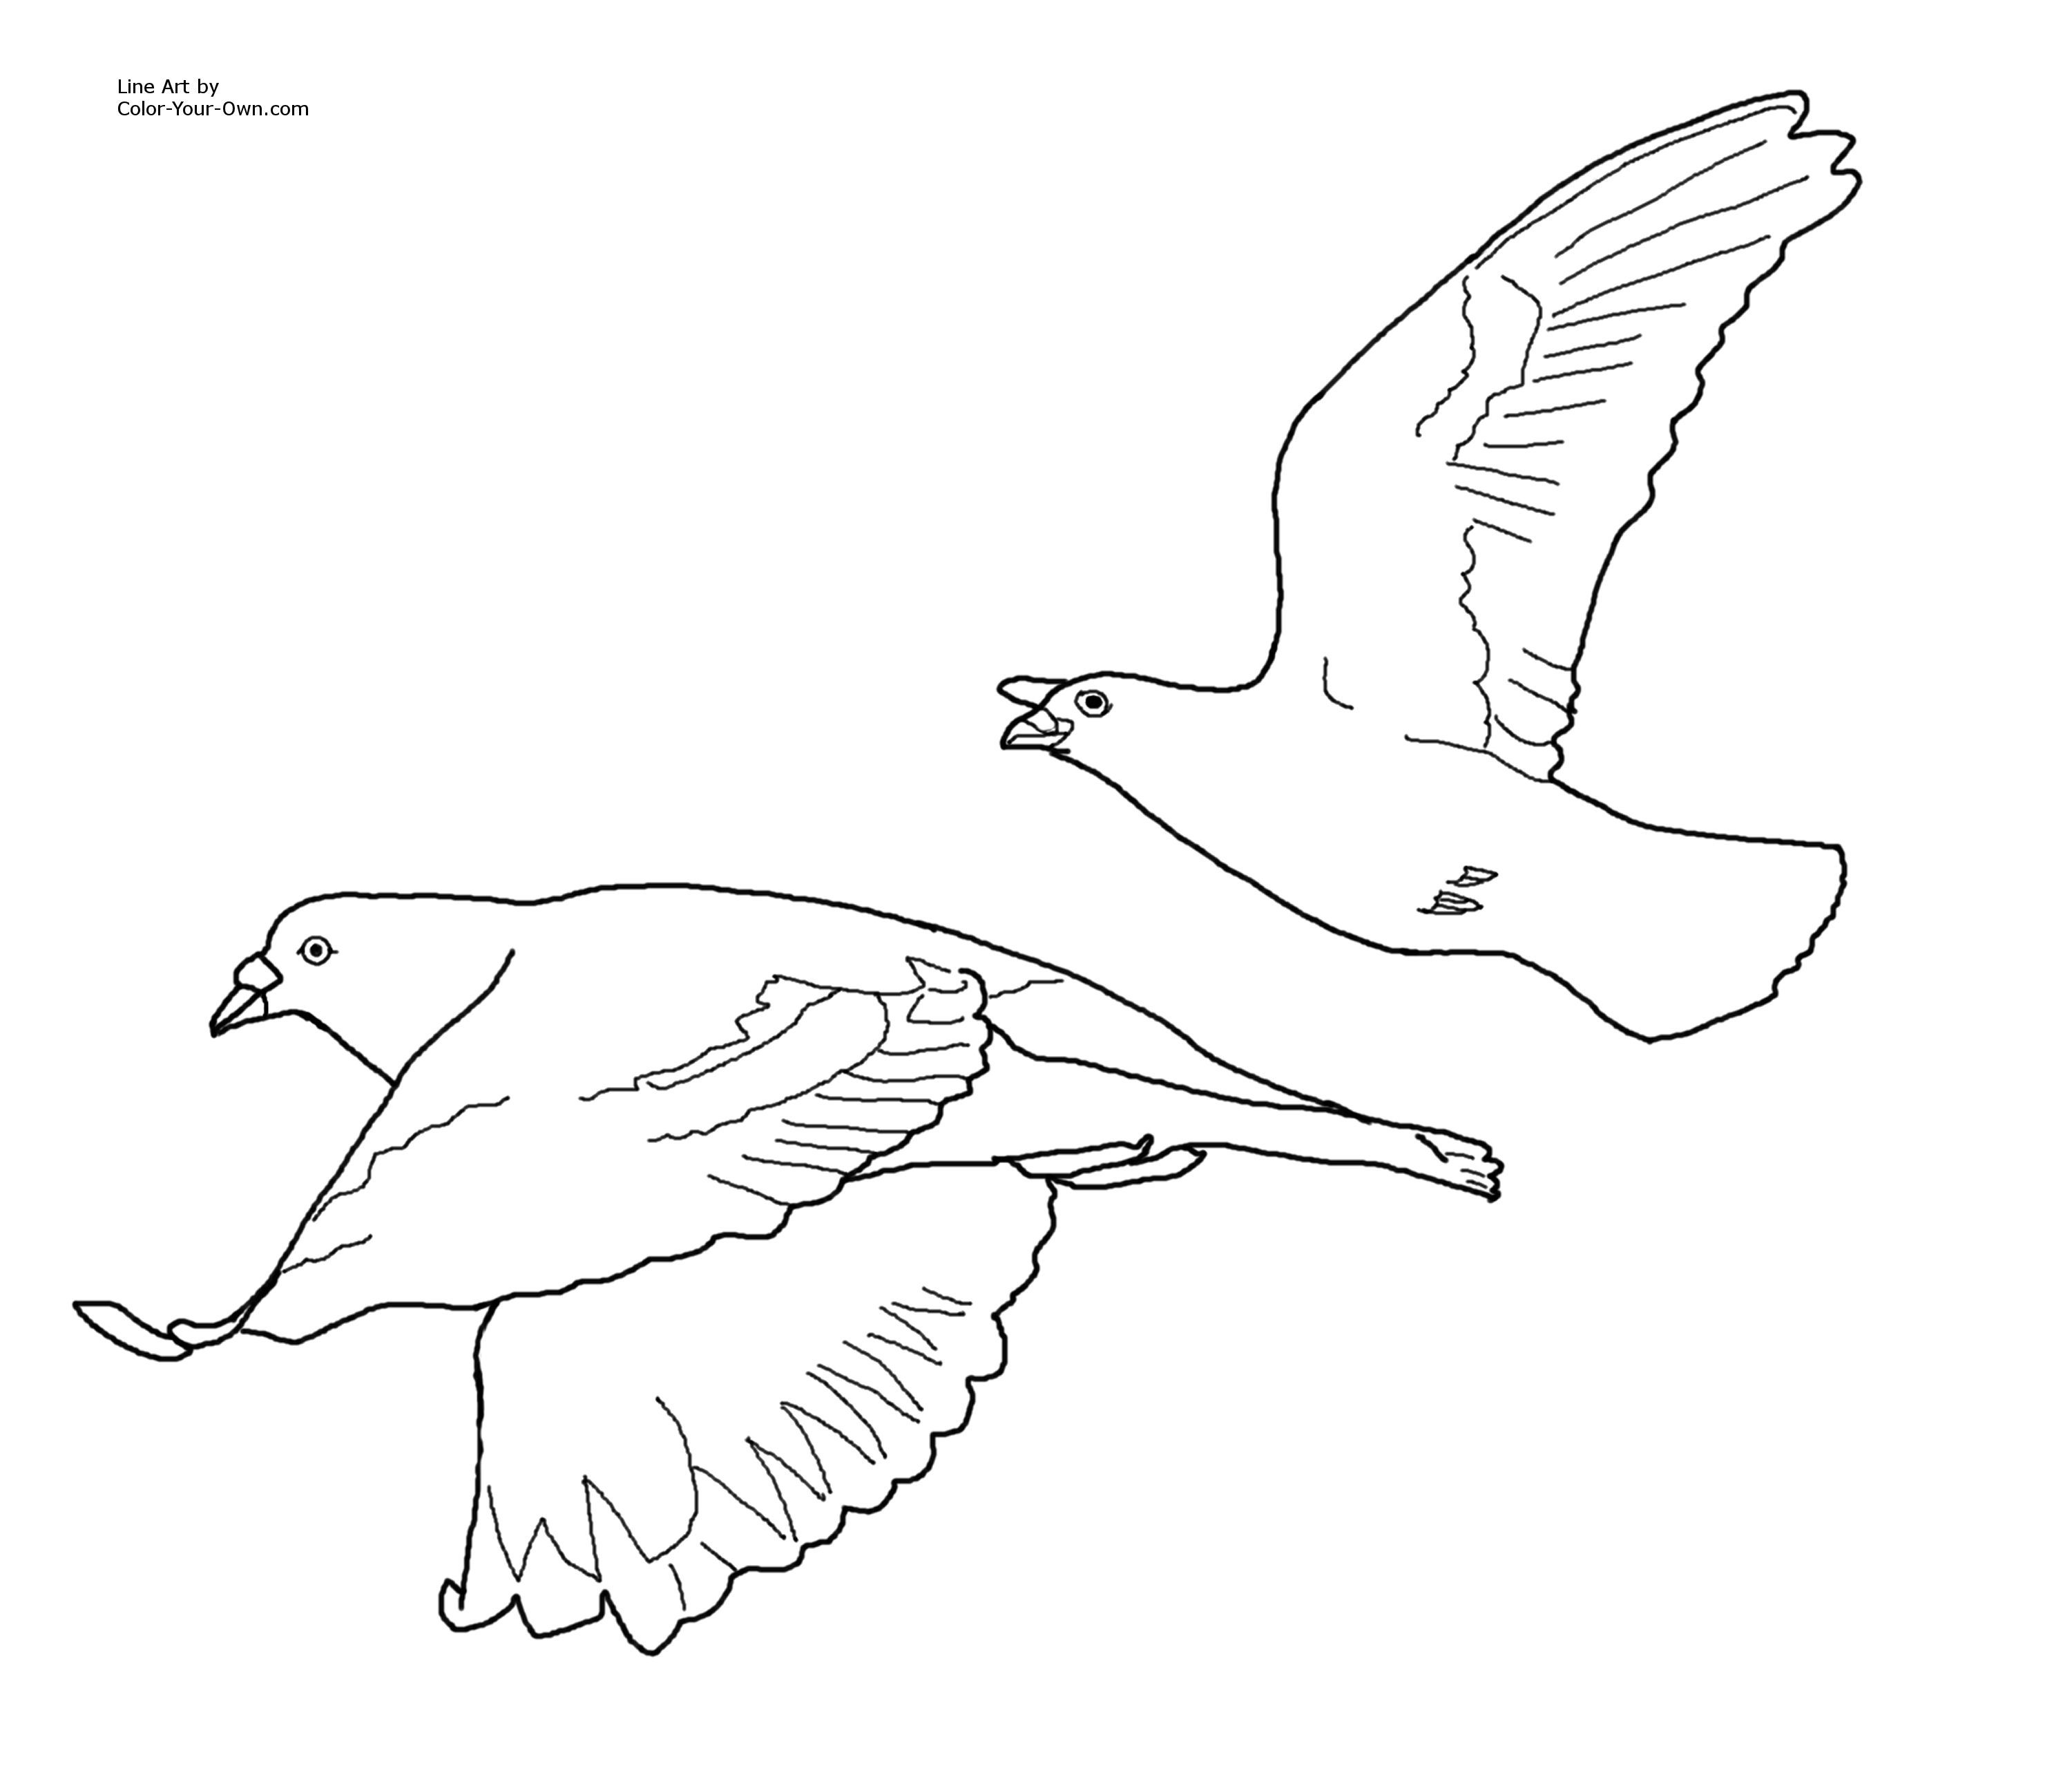 Pin By Aliya On Designspatterns Bird Coloring Pages Coloring Pages Bird Drawings